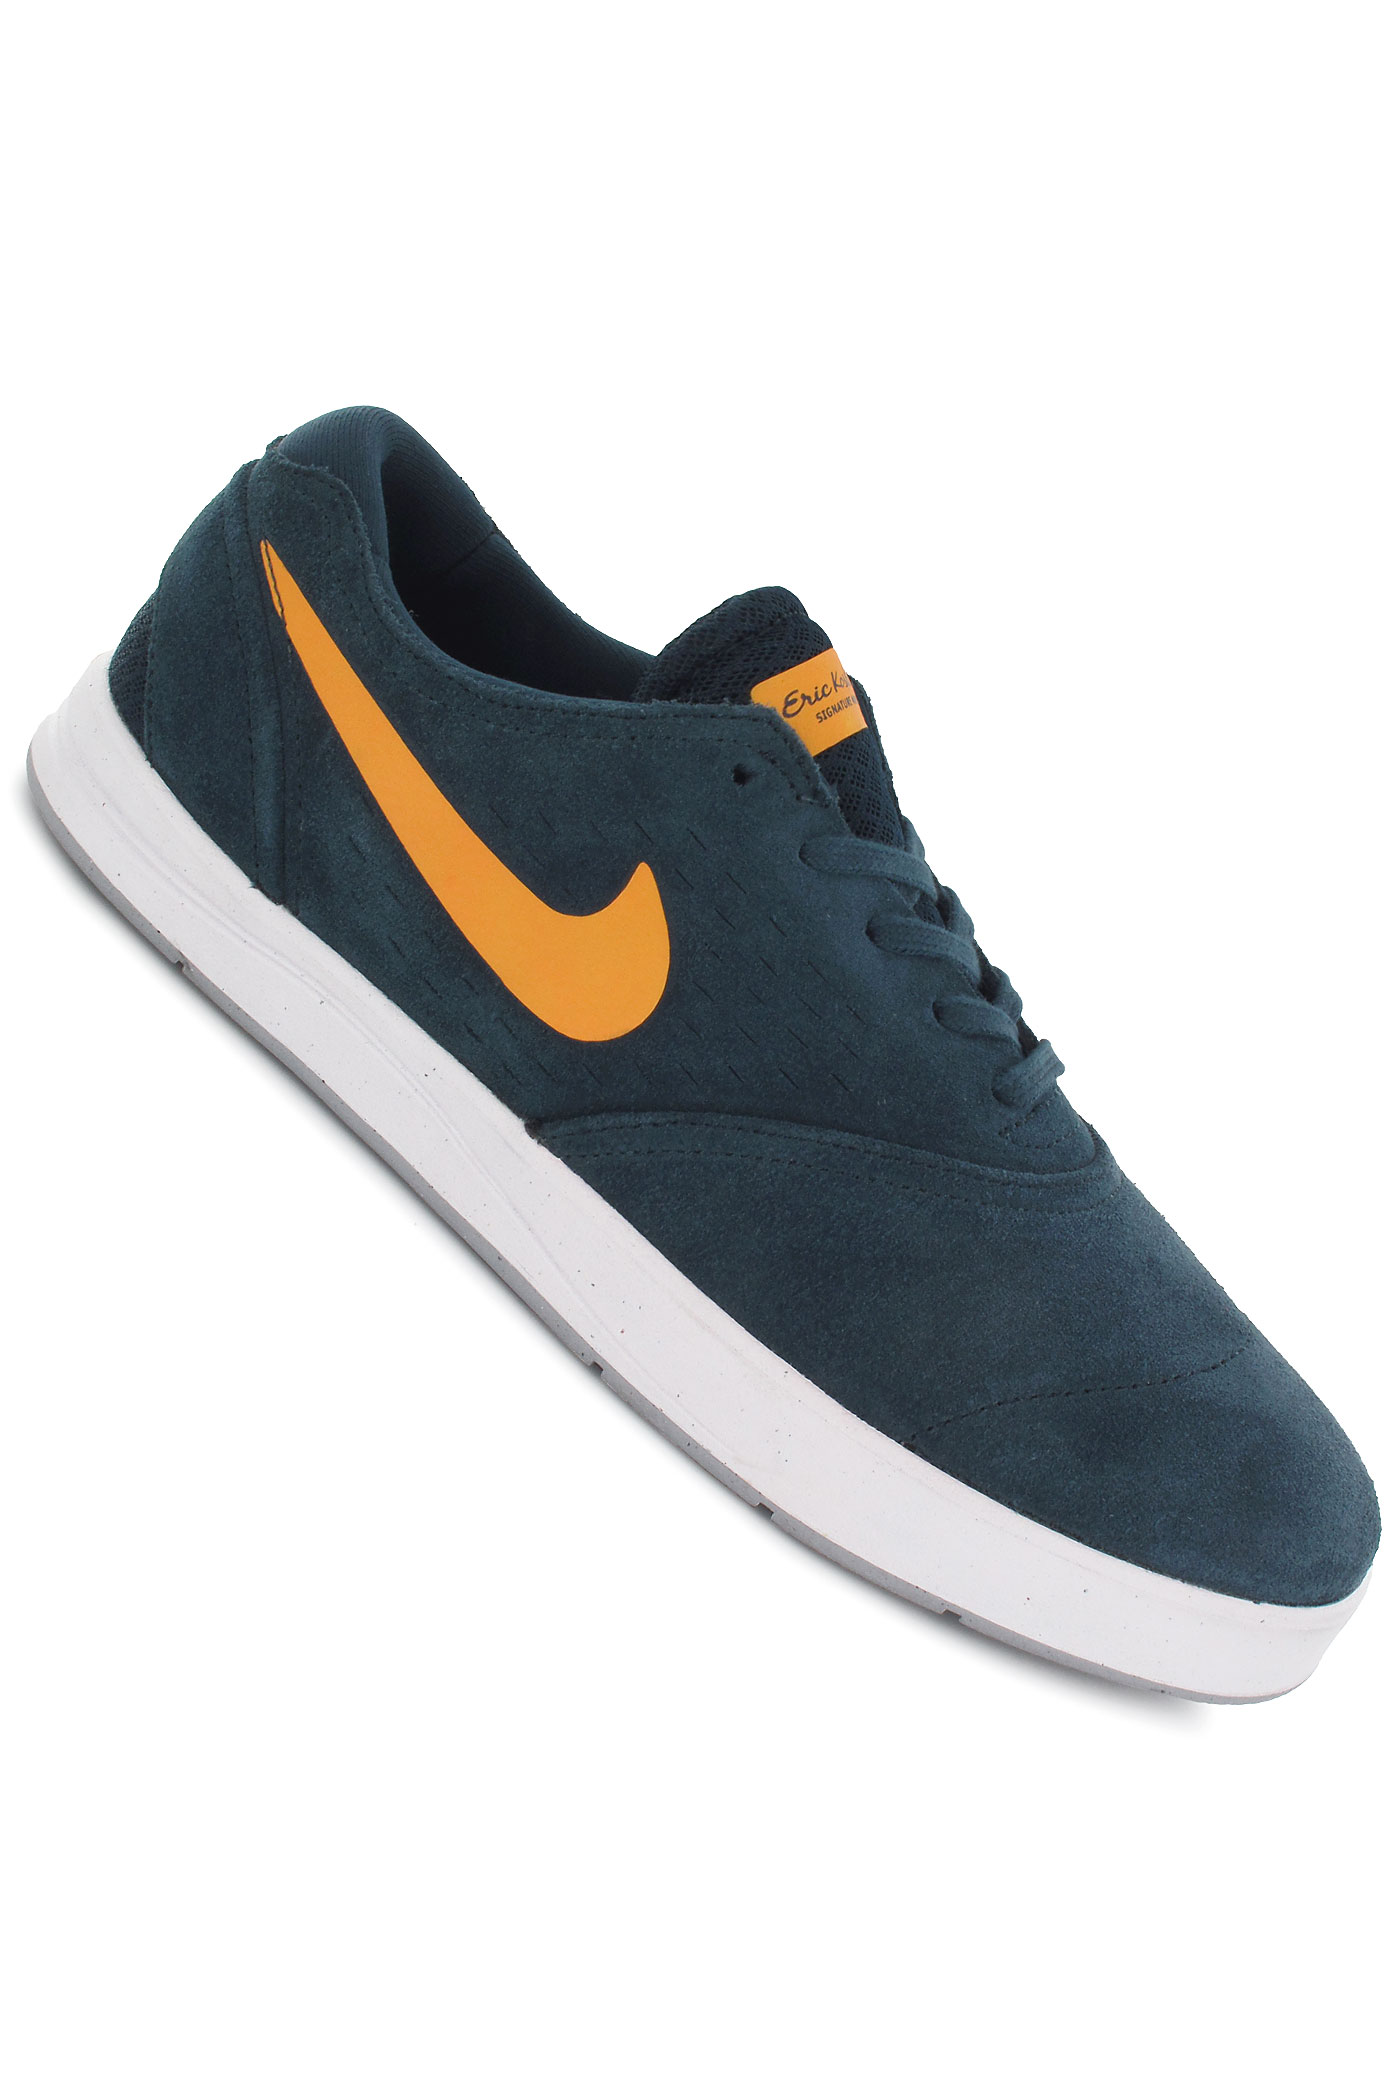 5d14f6e919 zapatillas eric koston